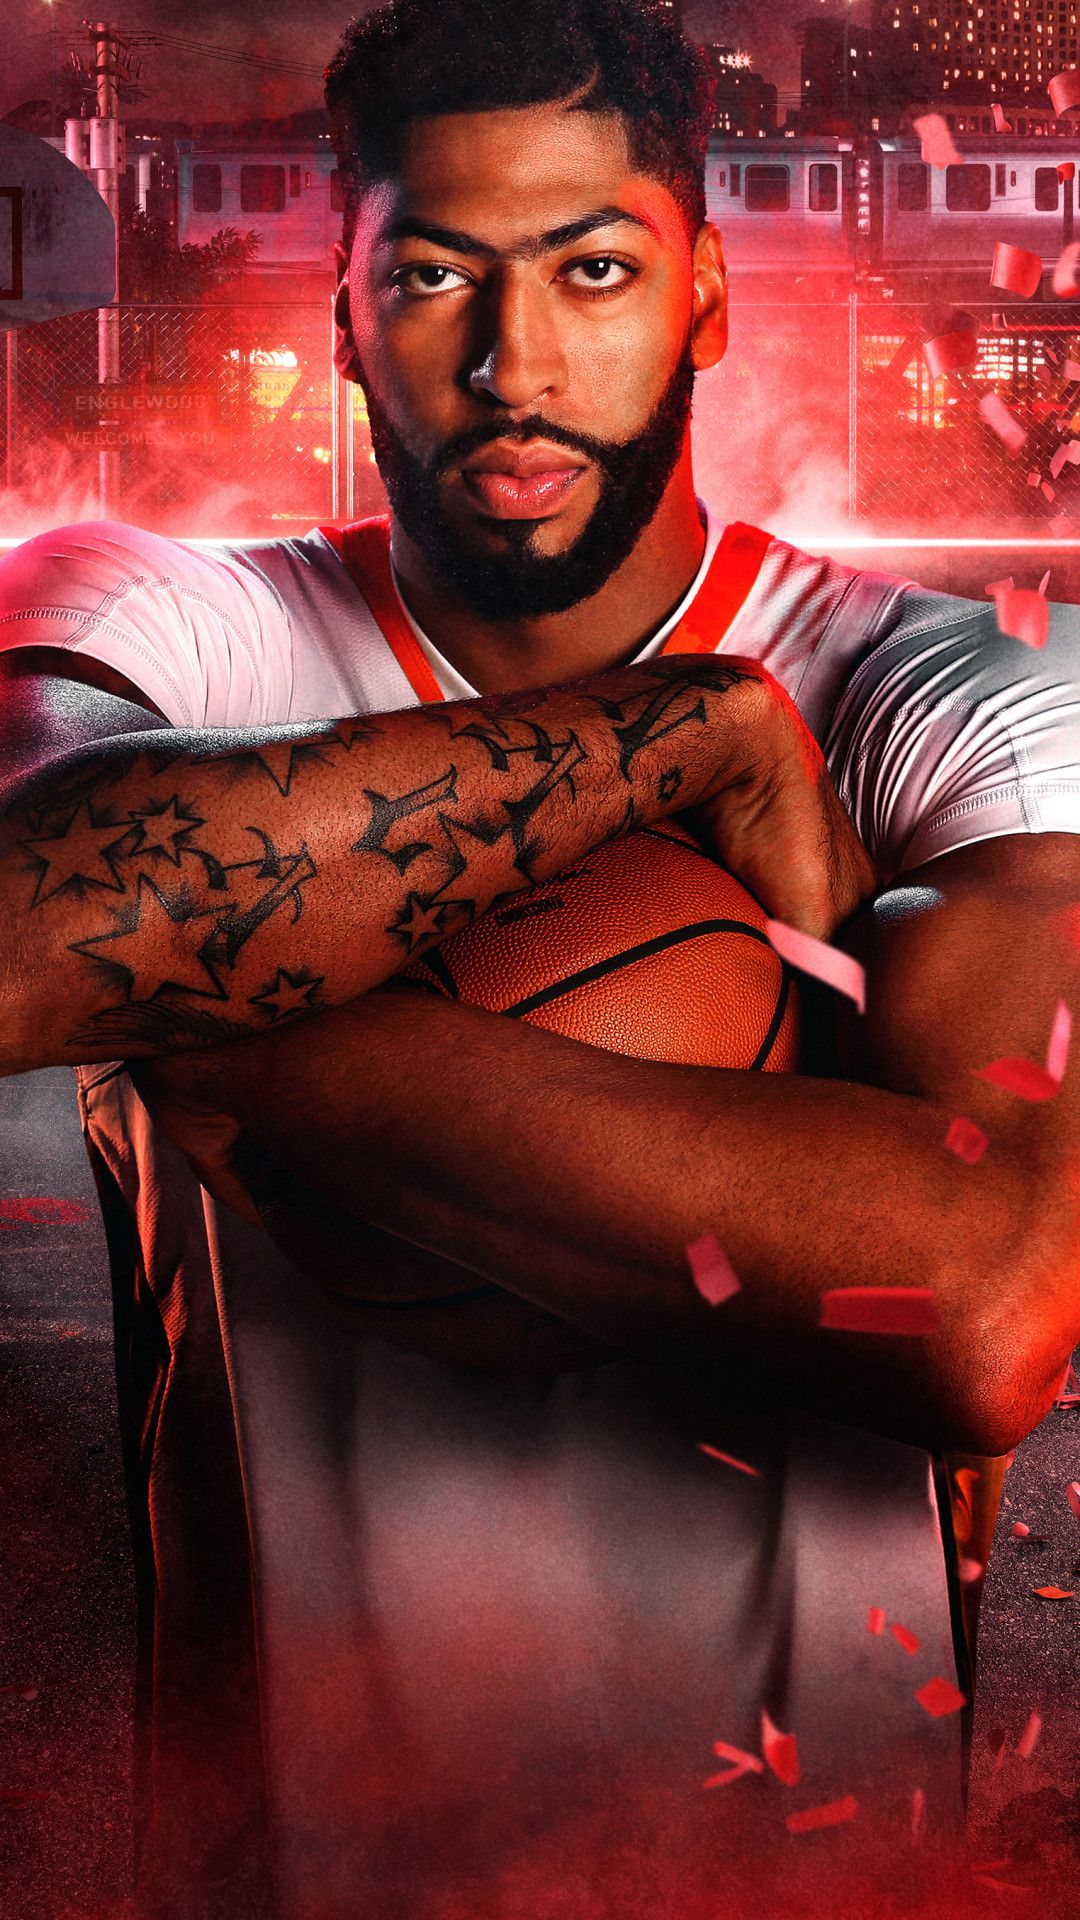 Nba 2k20 Mobile Wallpaper Iphone Android Samsung Pixel Xiaomi In 2020 Mobile Wallpaper Iphone Wallpaper Nba Pictures